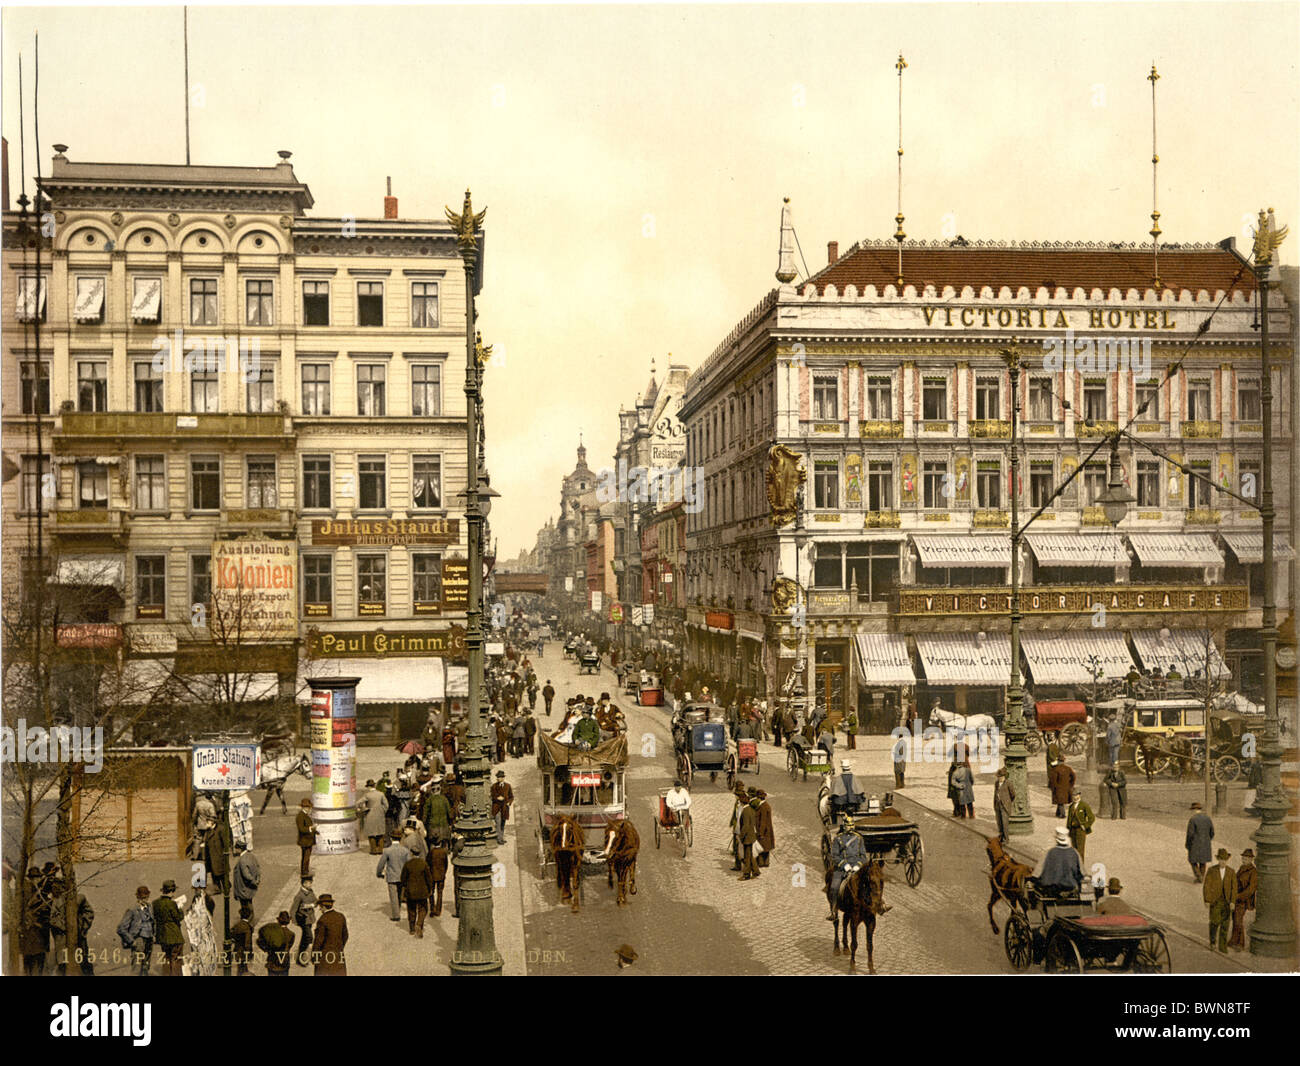 Berlin Victoria Hotel Unter den Linden Germany Europe Photochrom about 1900 German Empire history historical - Stock Image